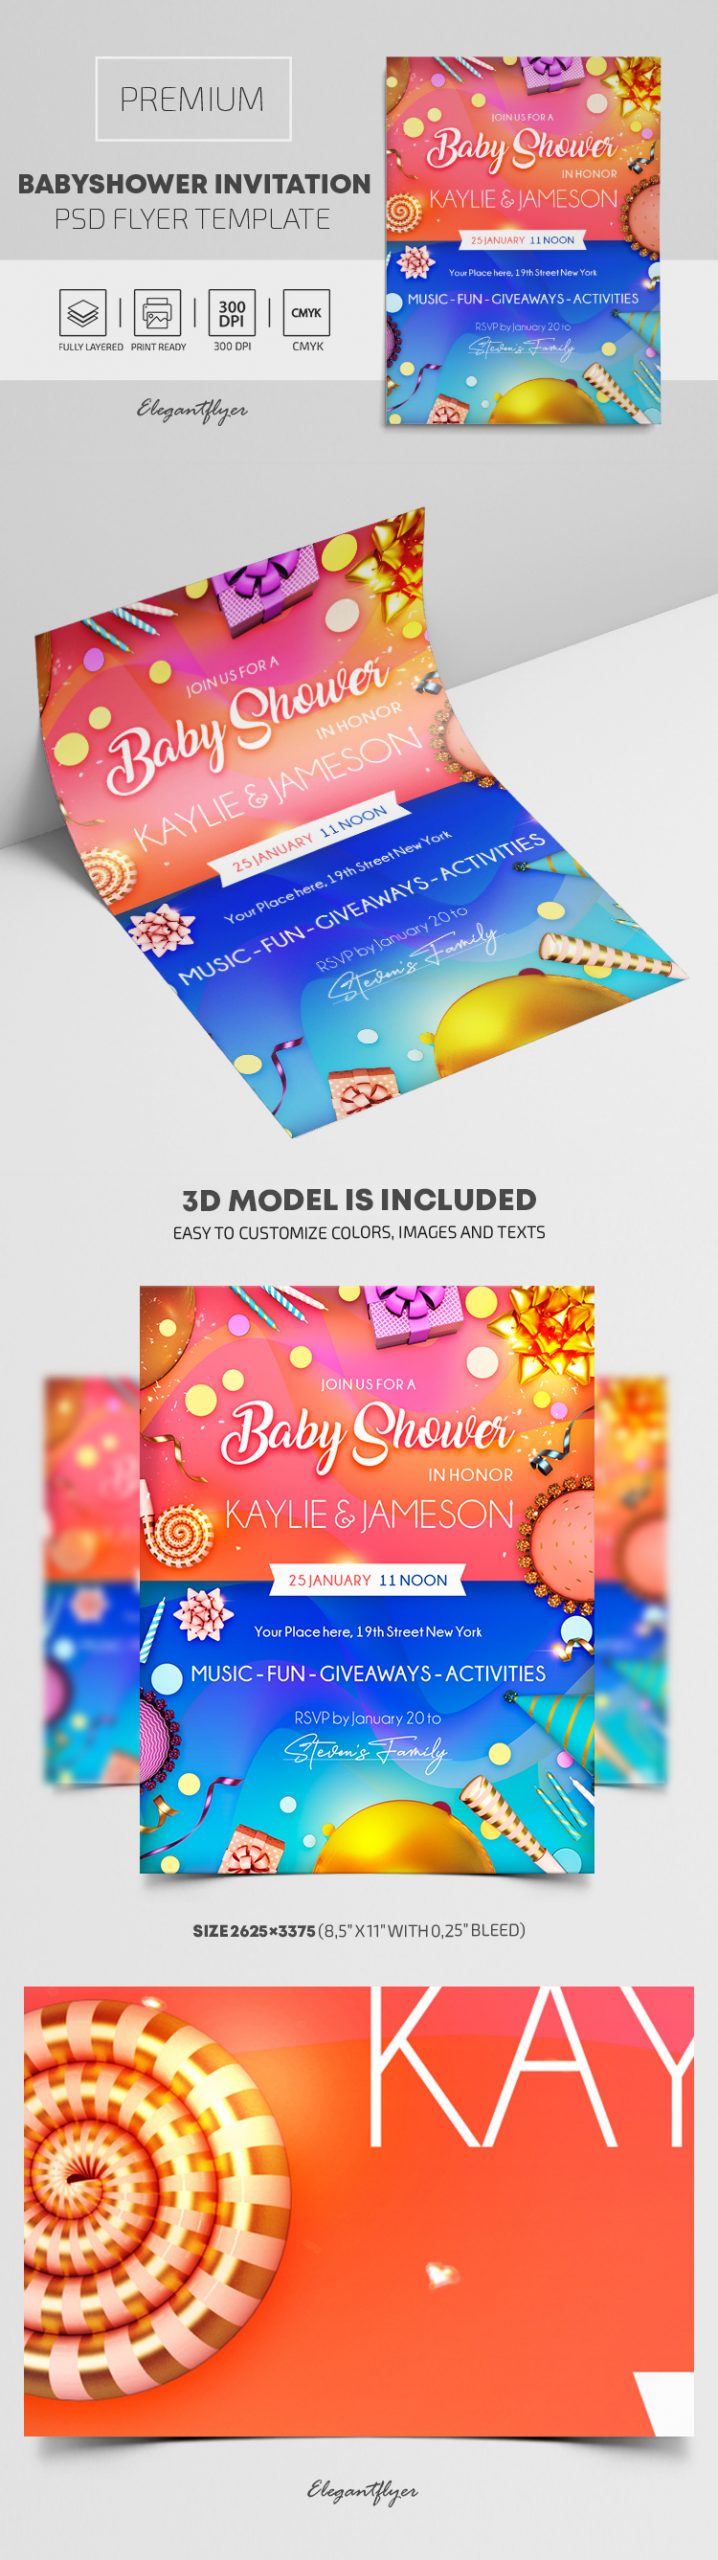 Baby Shower – Premium PSD Flyer Template